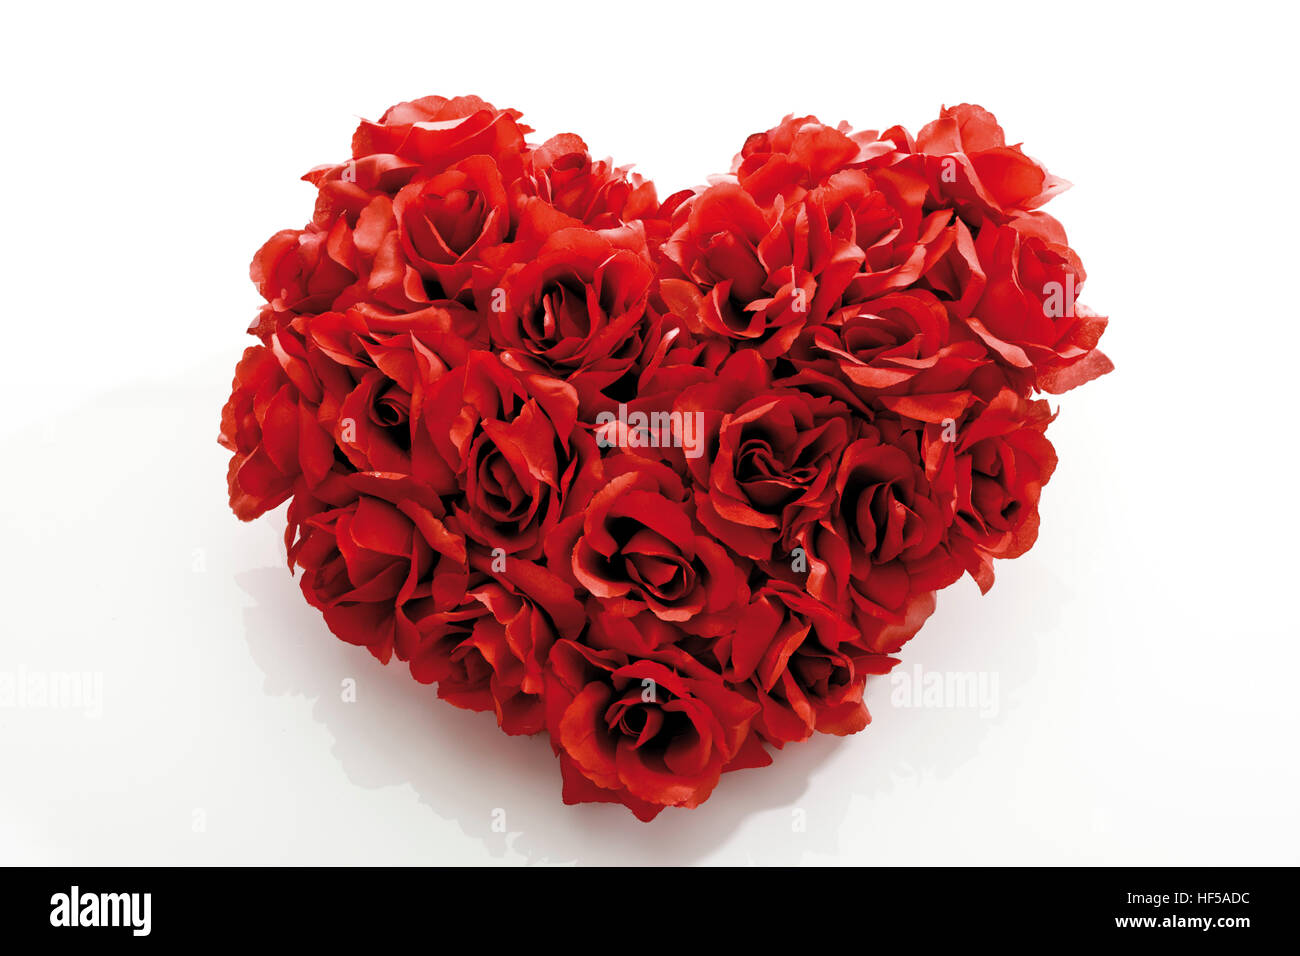 Red rose heart symbol of love stock photo 129810392 alamy red rose heart symbol of love buycottarizona